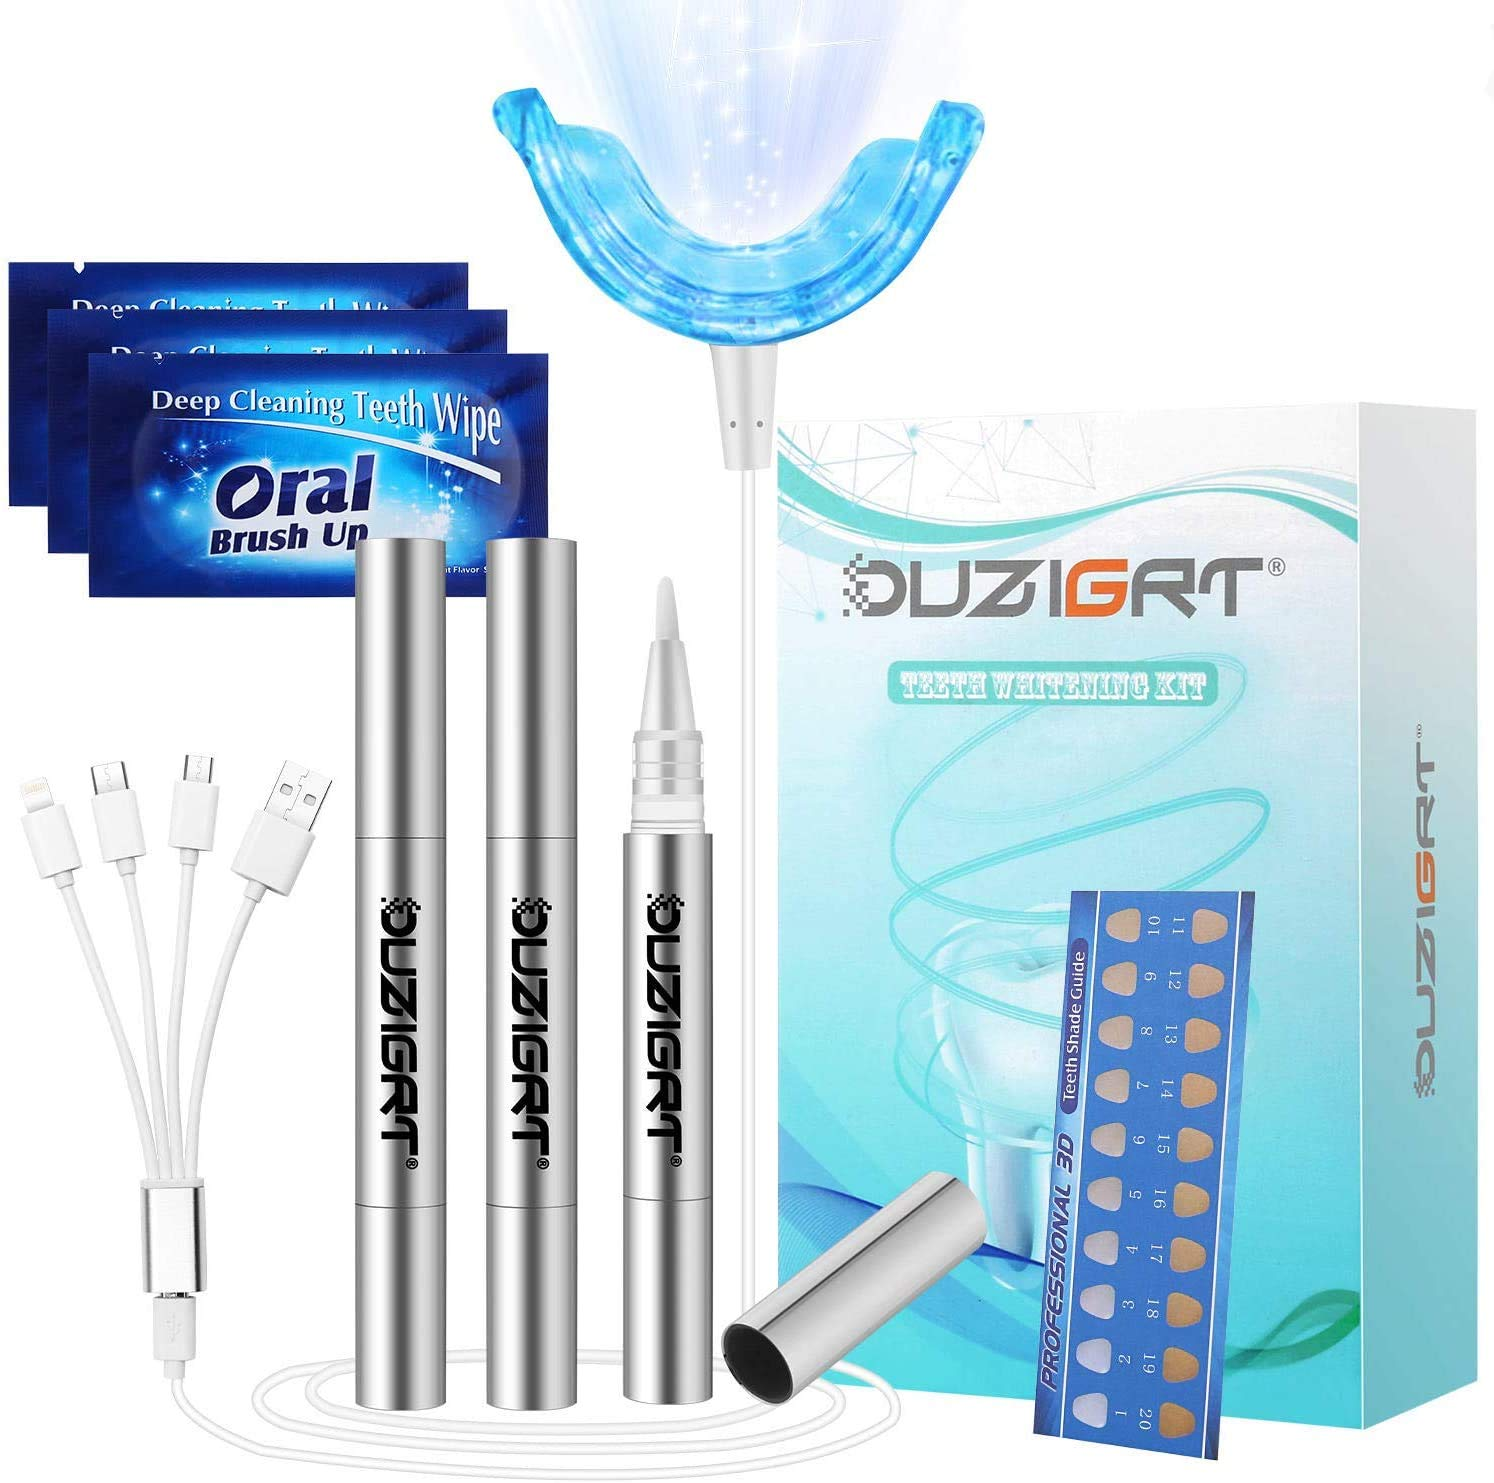 Teeth Whitening Kit Professional, OUZIGRT Teeth Whitening Kit with Led Light Without Sensitivity, 3 Teeth Whitening Pens, Whitens in 15 Minutes, Teeth Whitening Kit at Home Use